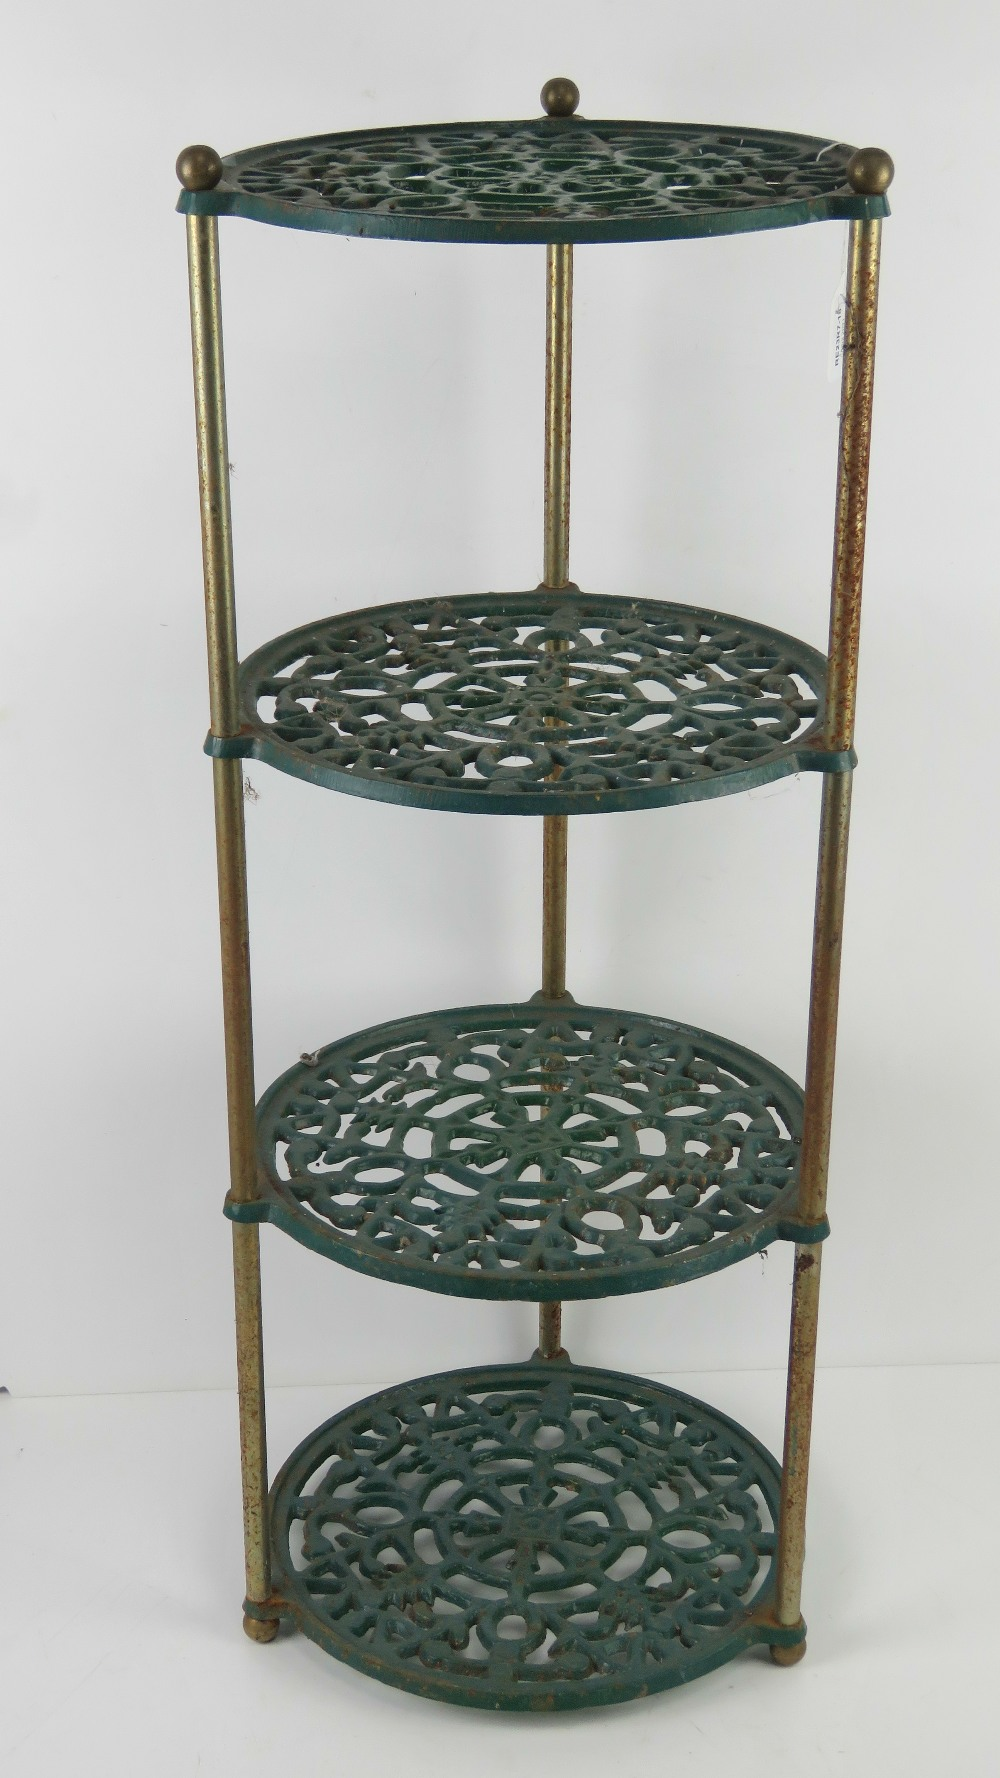 A green painted metal kitchen four tier